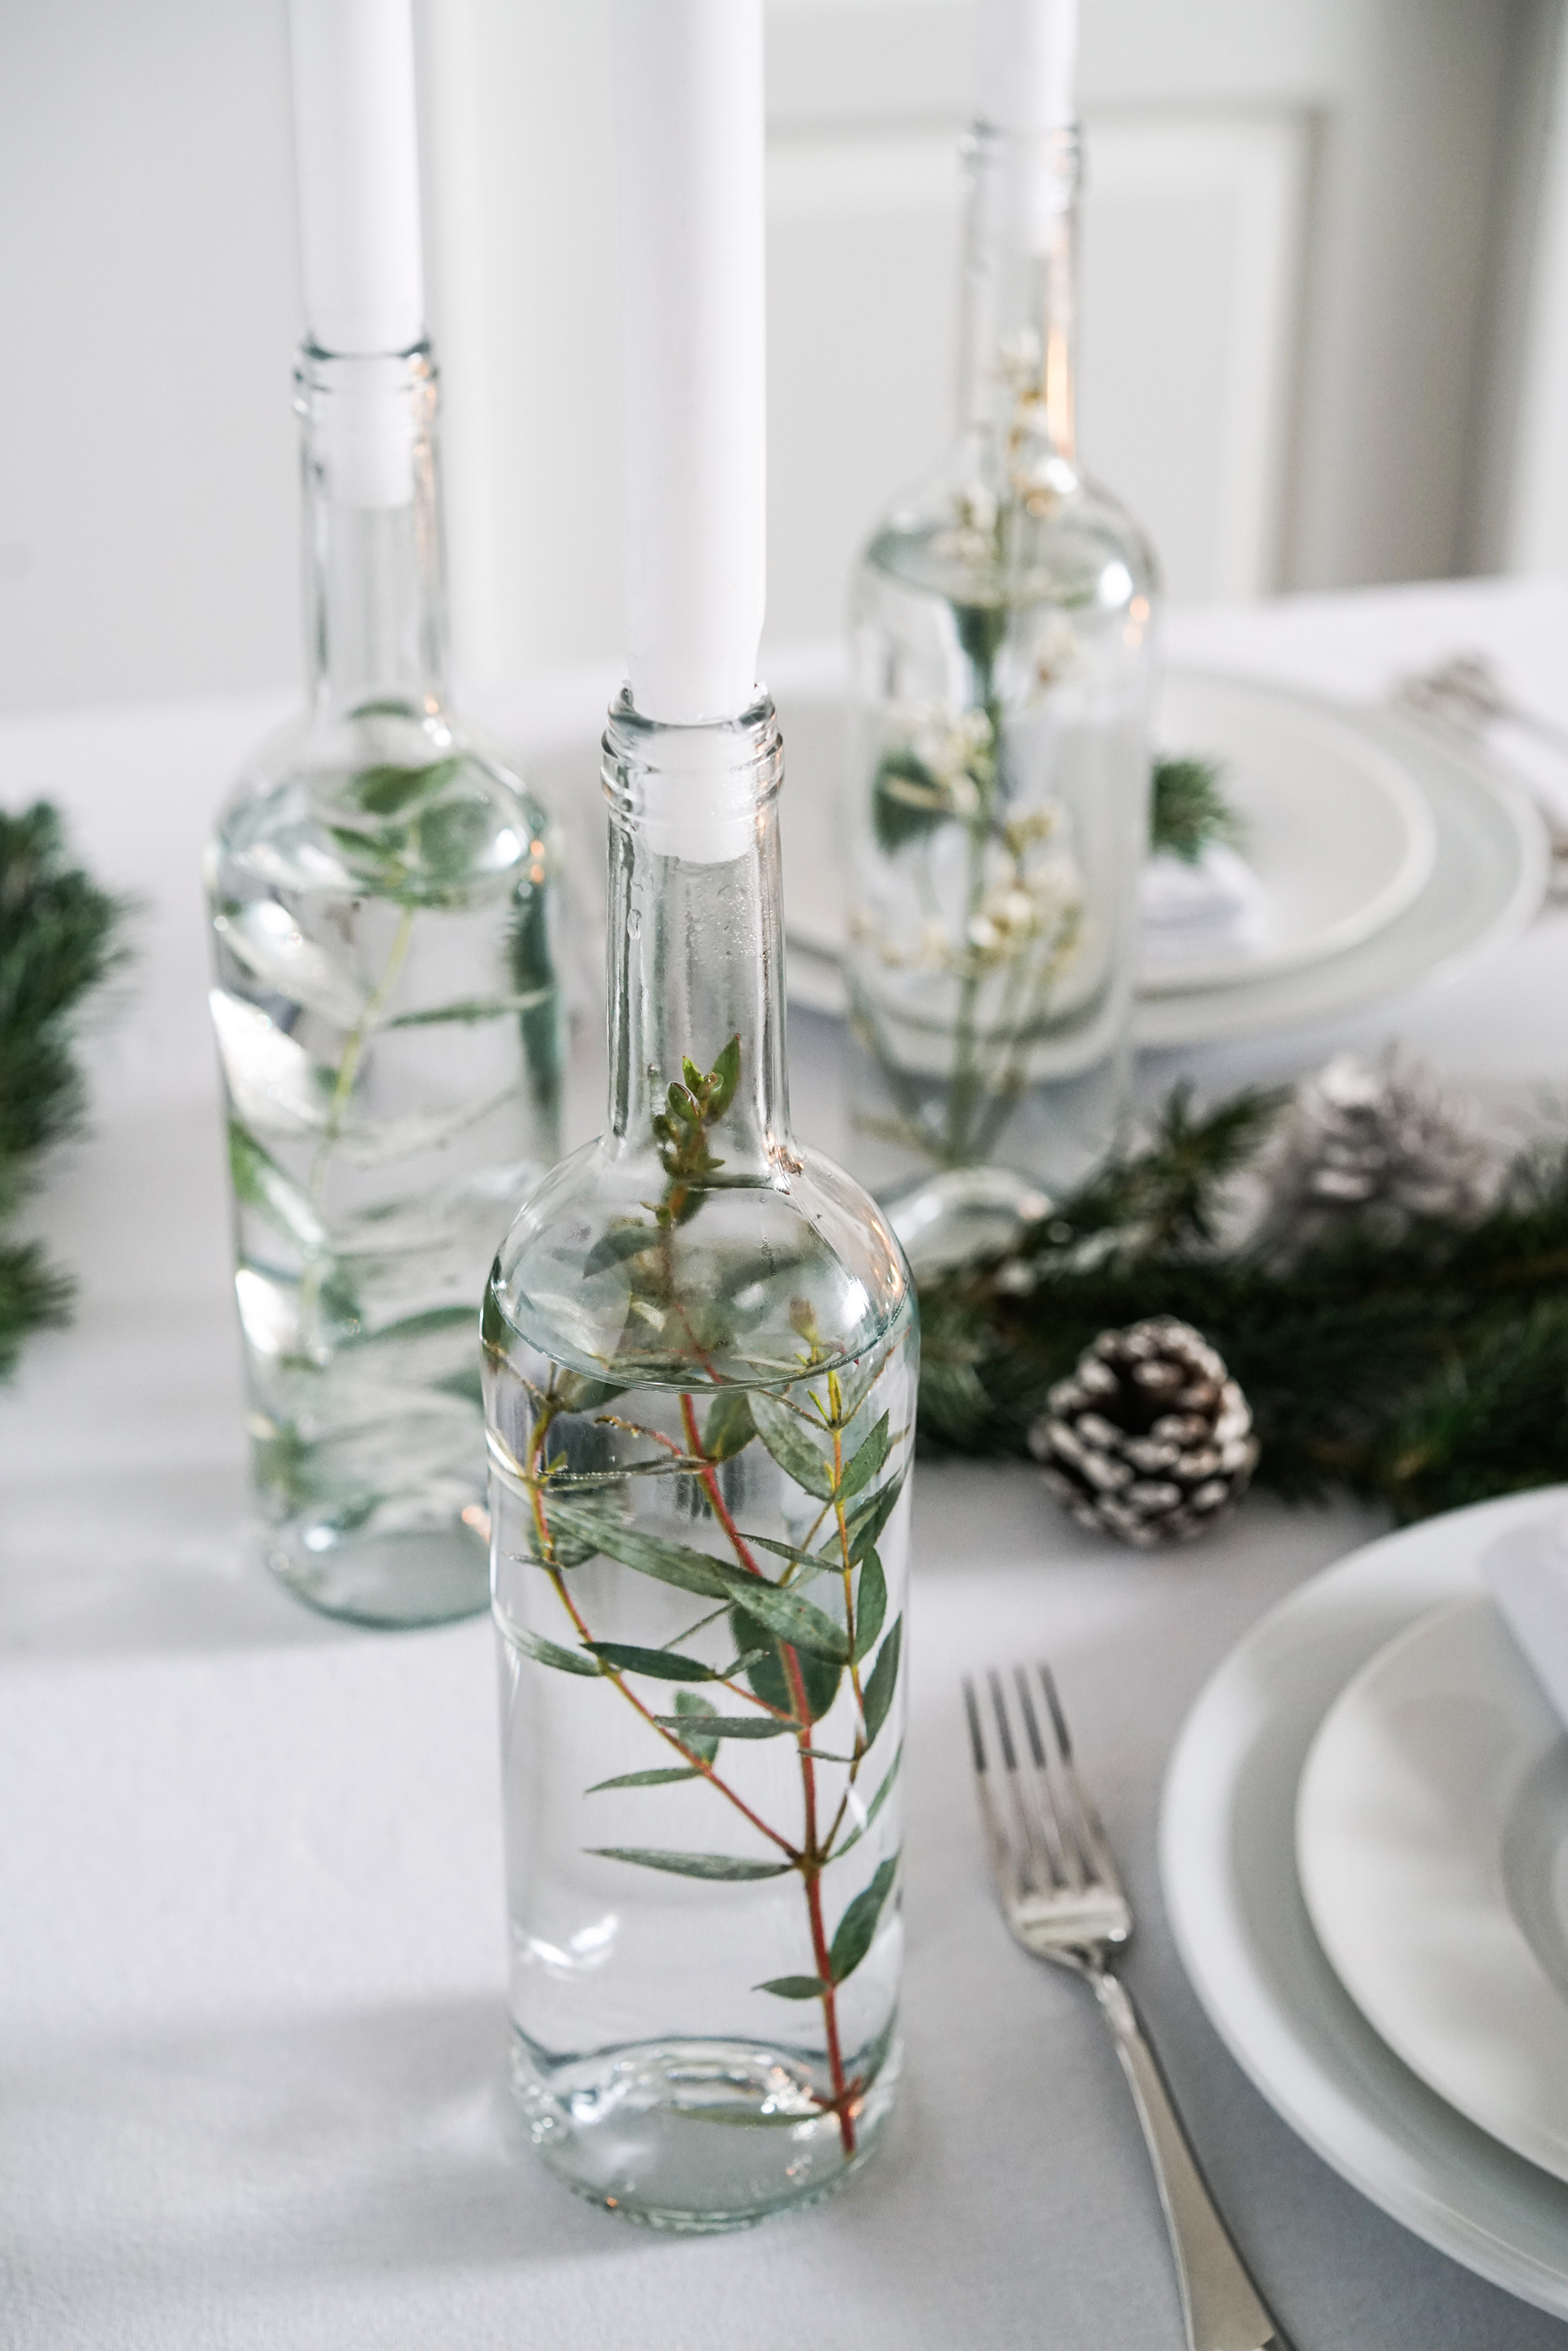 Why not try wrapping the candles (preferably ones of large diameter) with leftover foliage, fallen branches from the trees or herbs like rosemary or thyme.